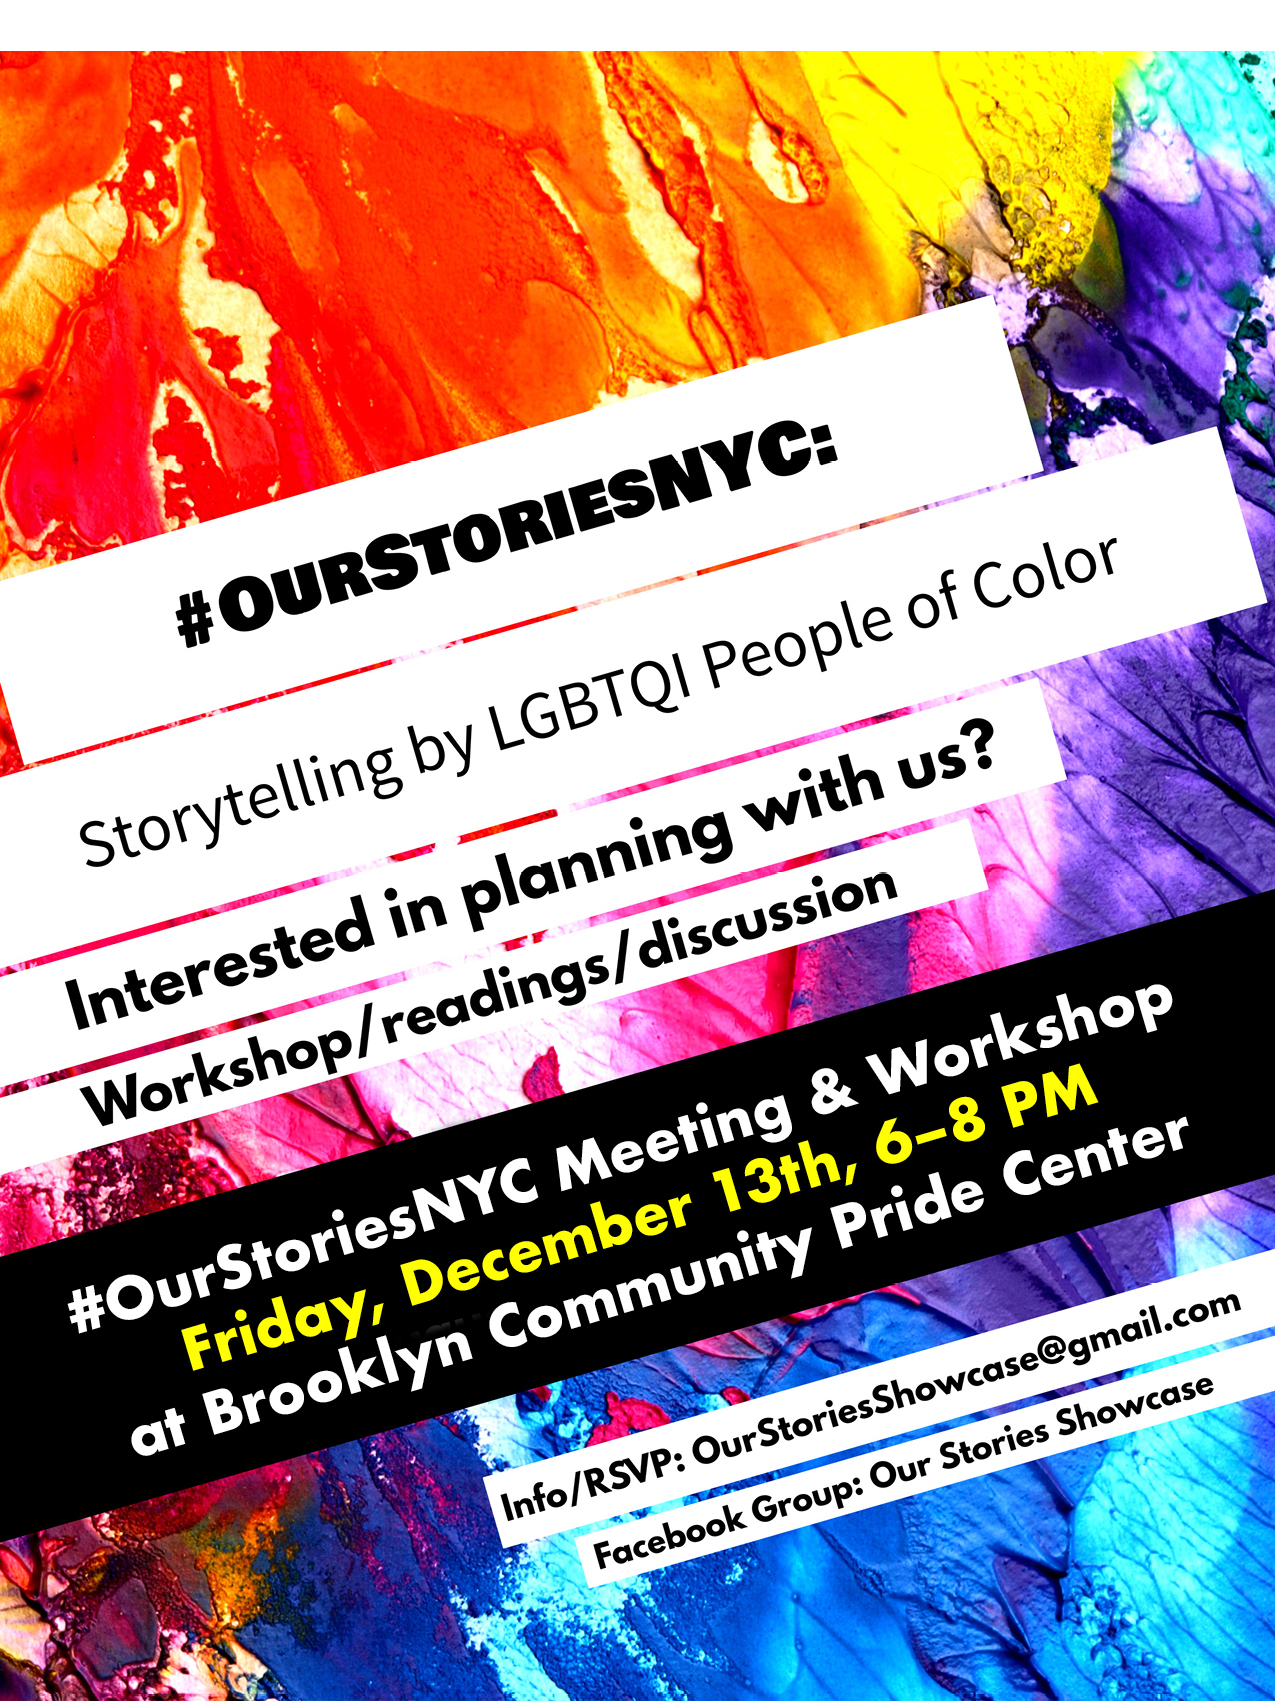 #OurStoriesNYC Writer's Workshop at Brooklyn Community Pride Center